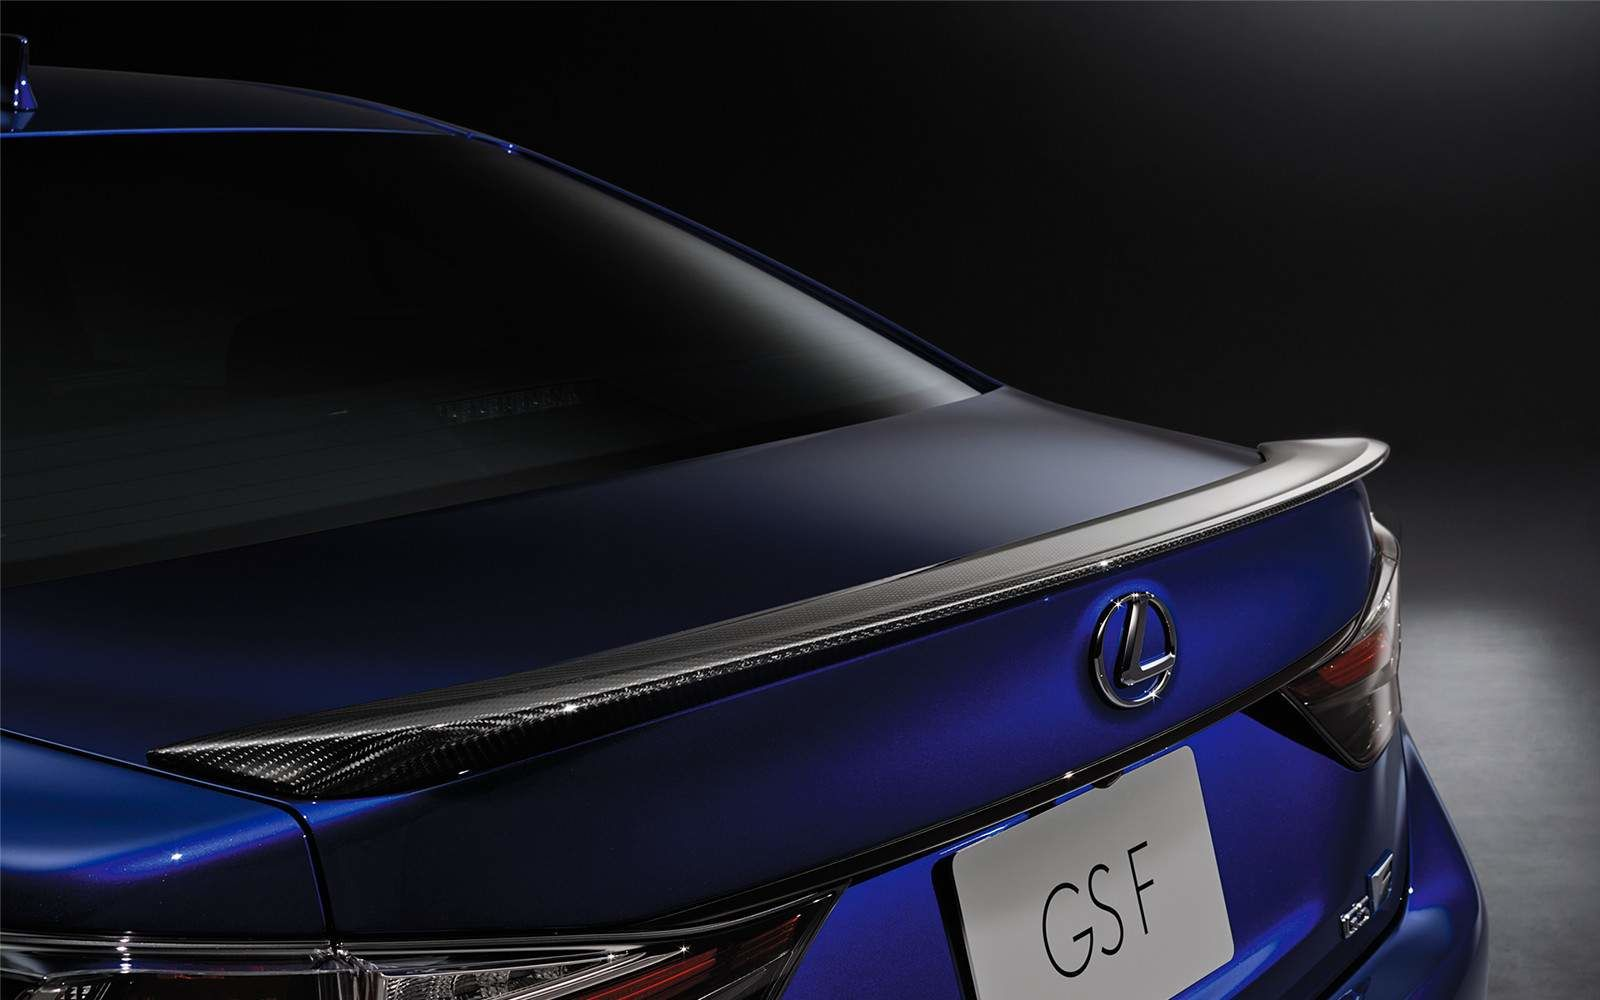 Lexus 2020 Gsf Ultrasonic Blue Mica 2.0 Rear L